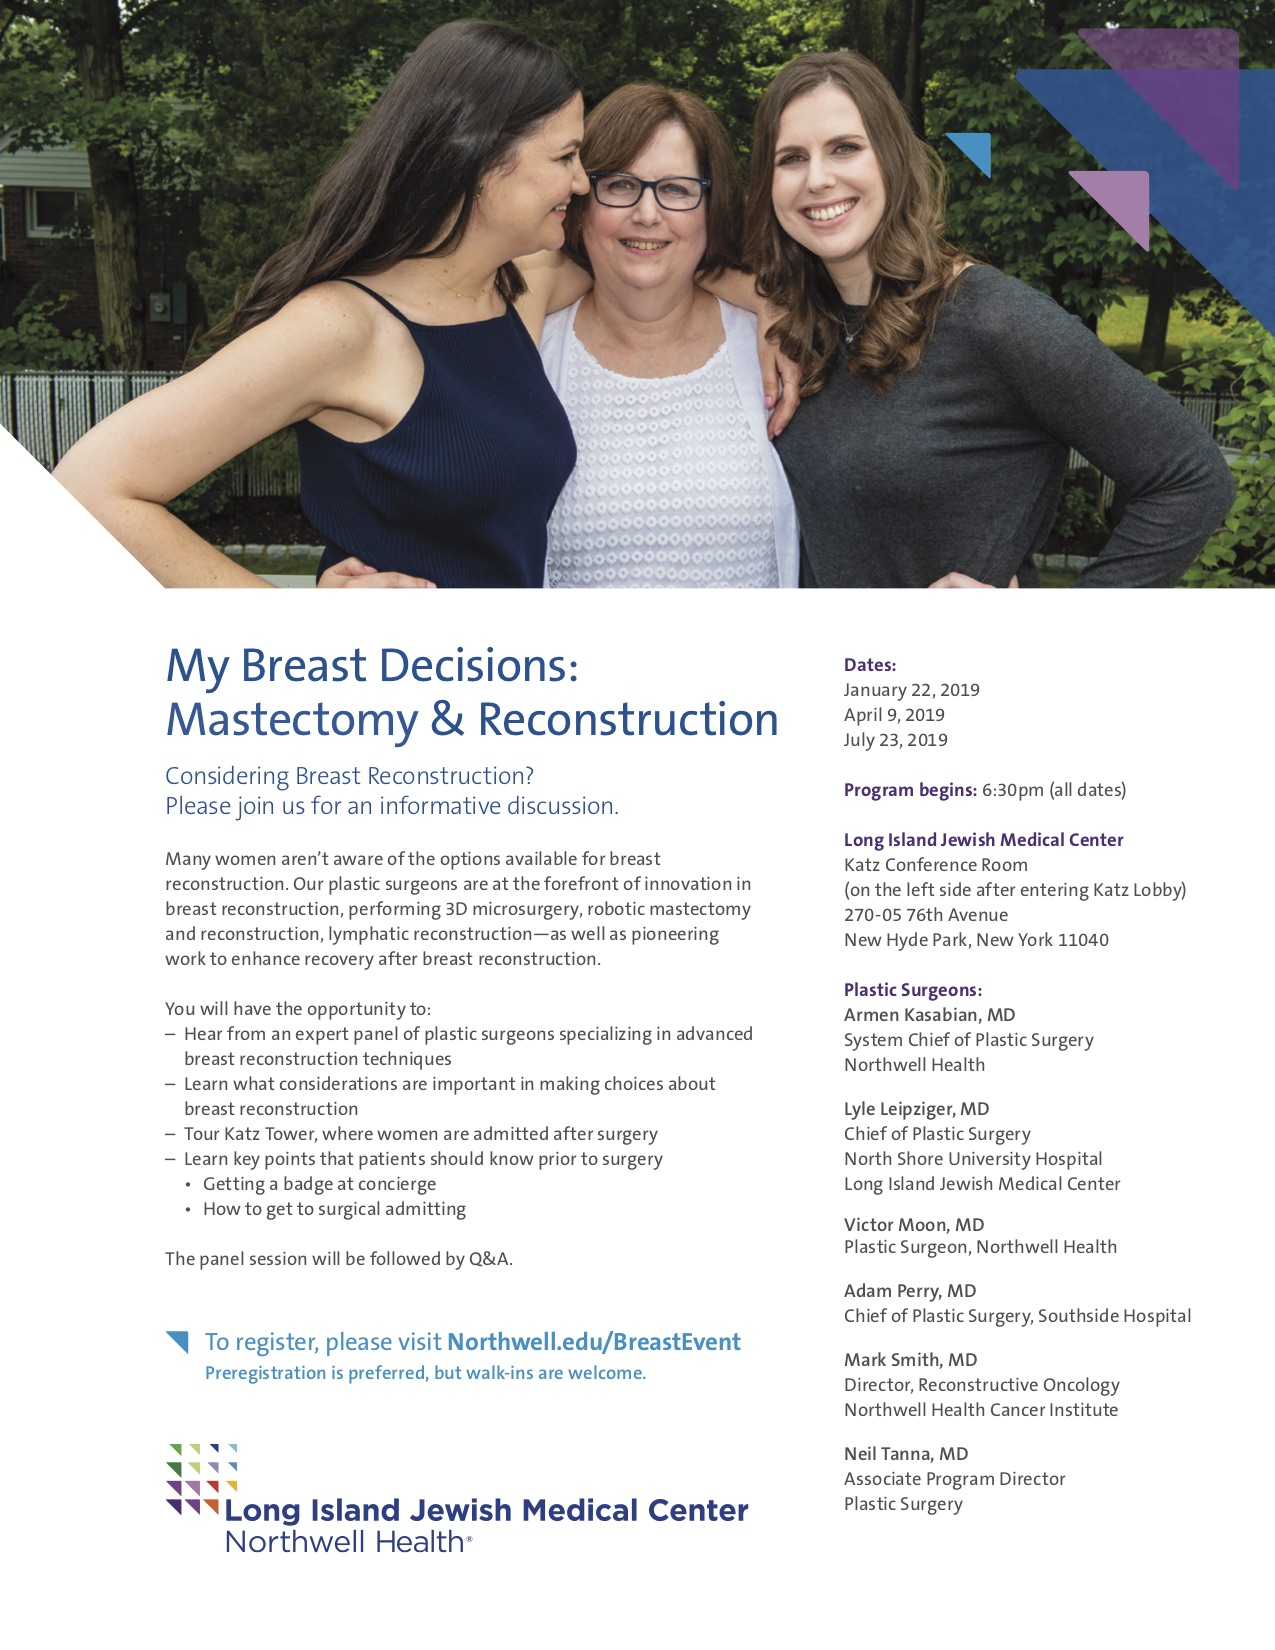 My Breast Decisions: Mastectomy & Reconstruction